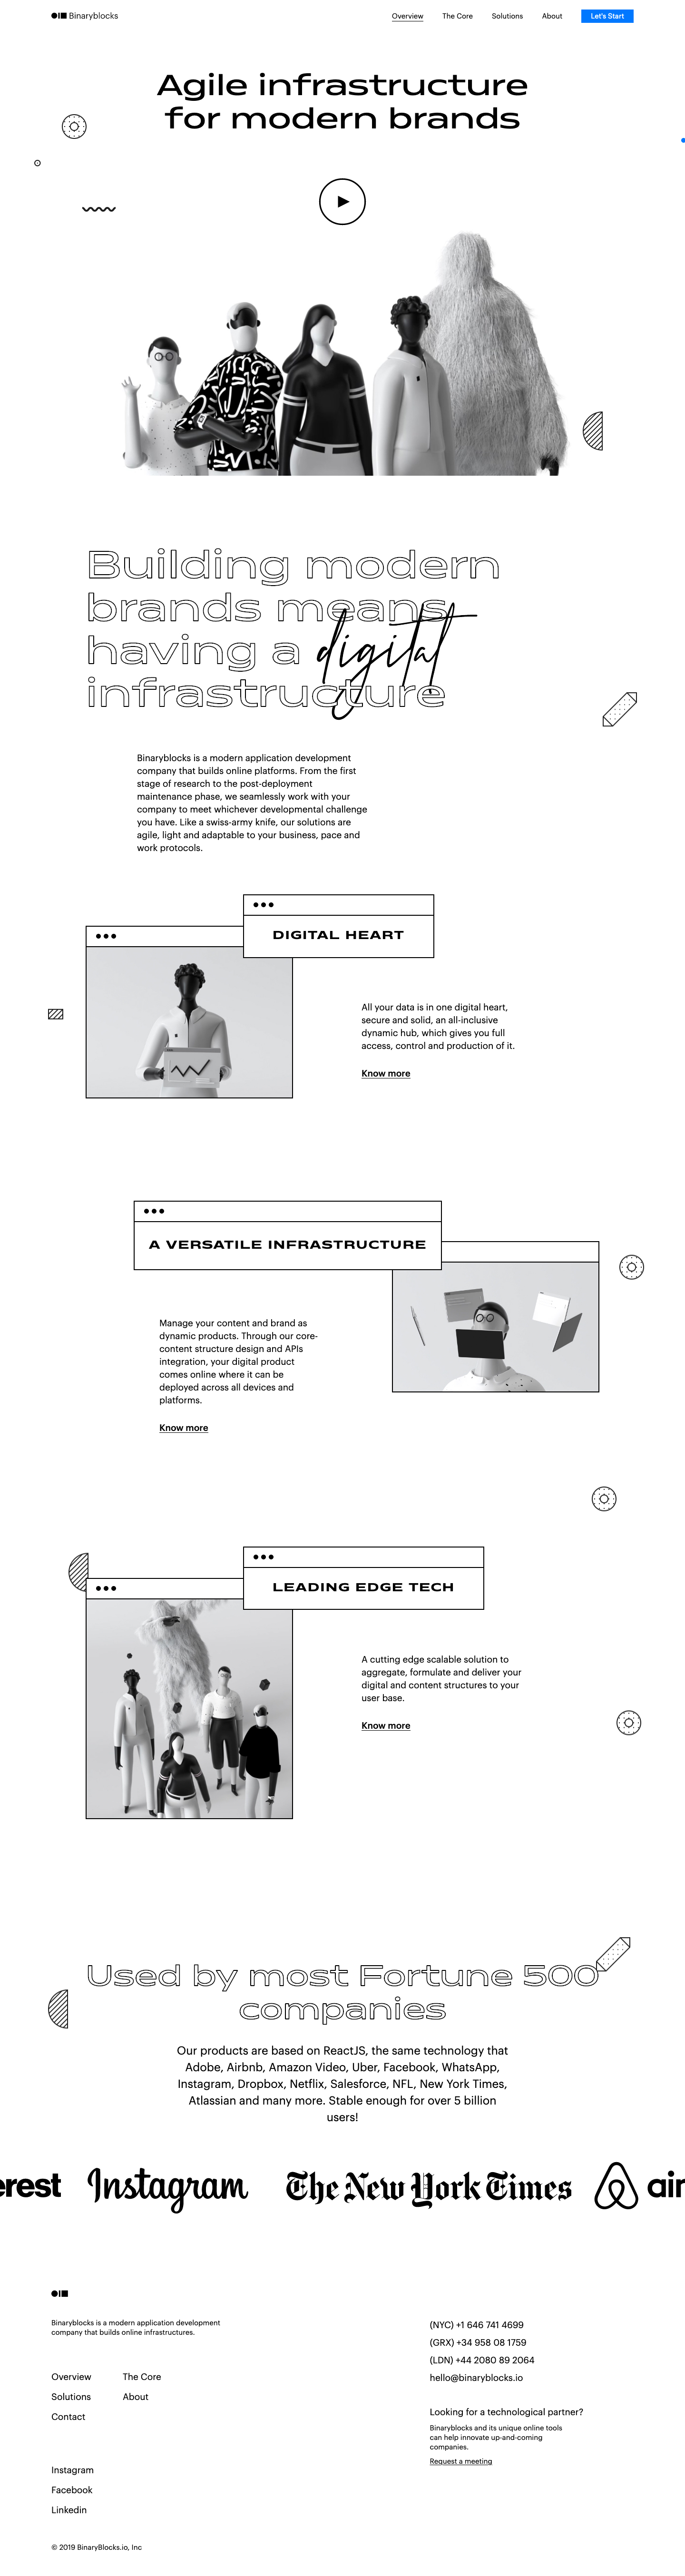 Binaryblocks Landing Page Example: Agile infrastructure for modern brands